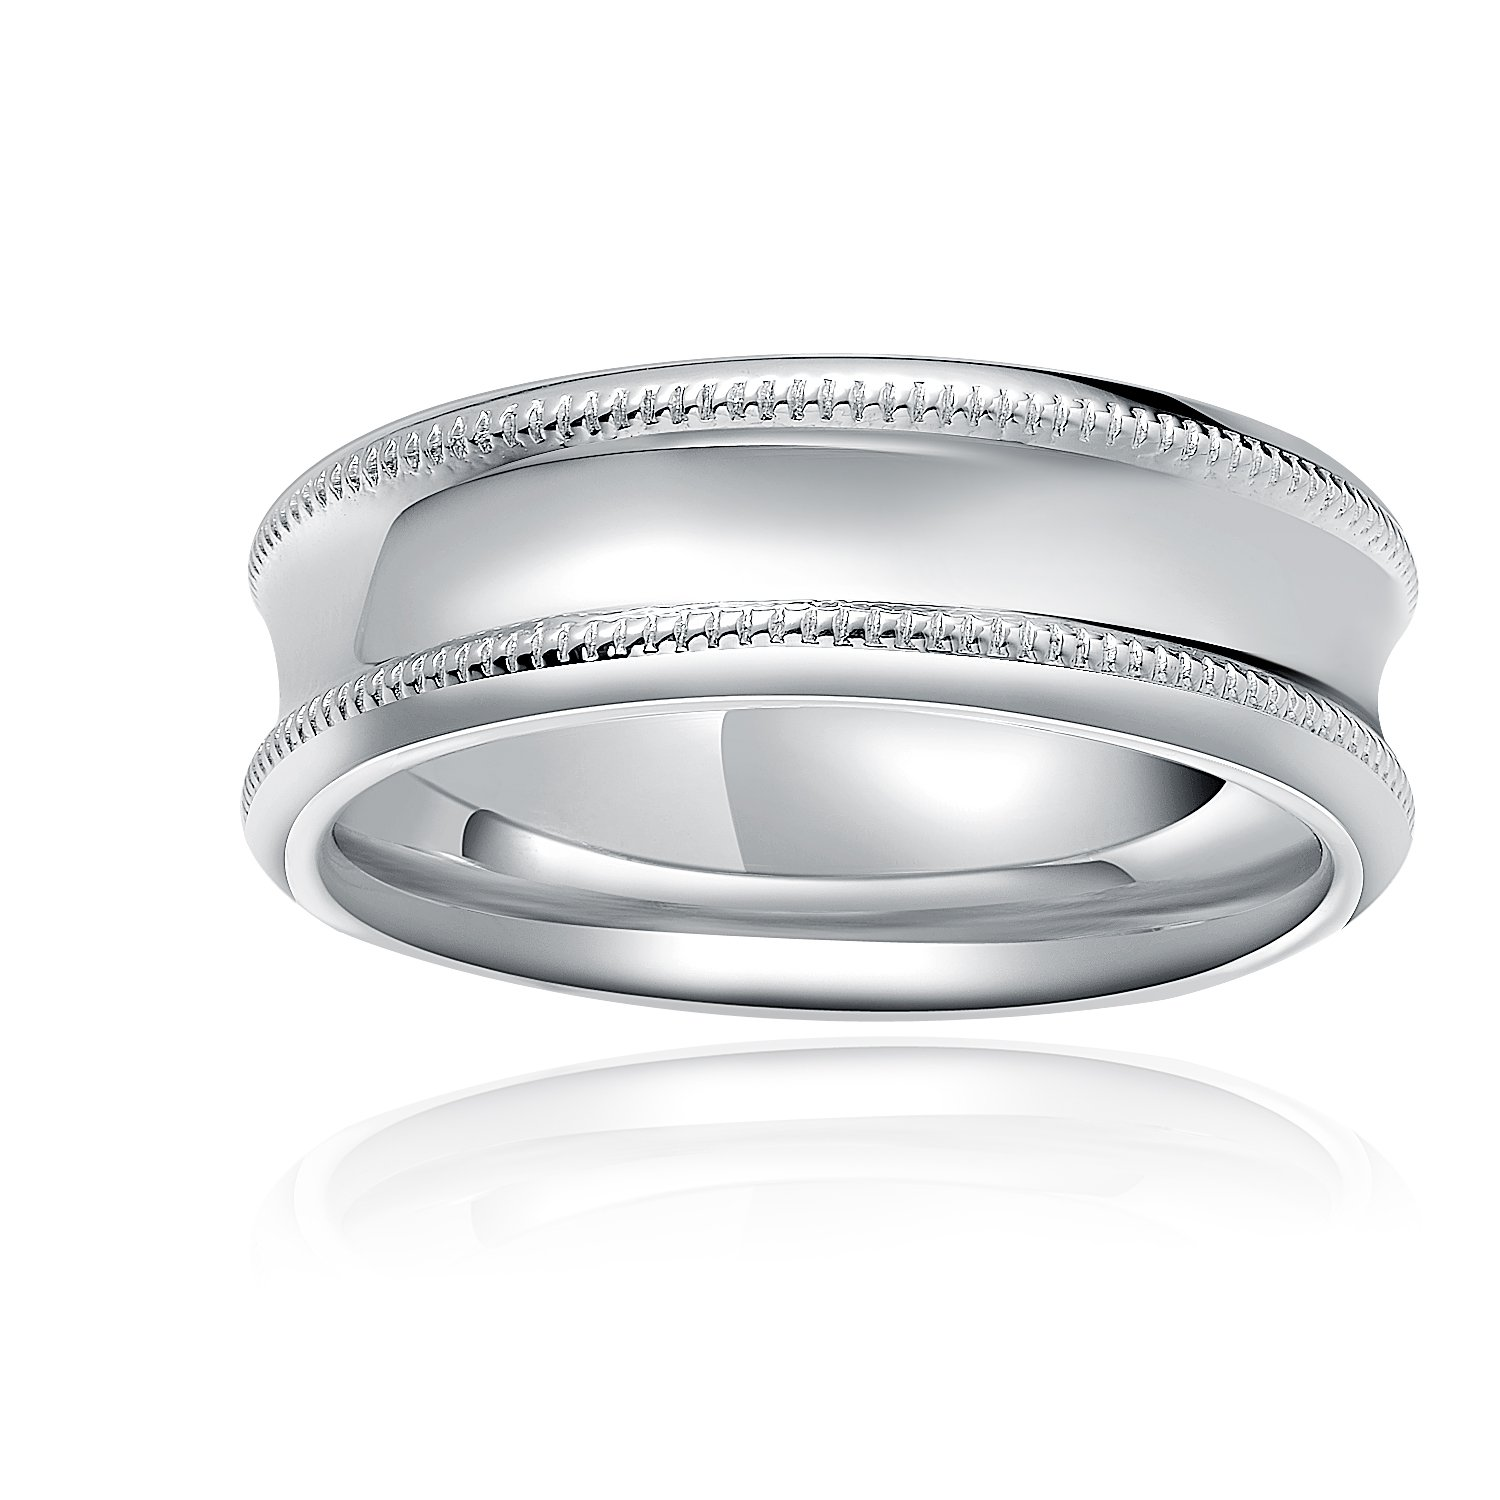 925 Sterling Silver Unique Crafting Baseball Pattern Ring Band / Pendant (Women) A10157R